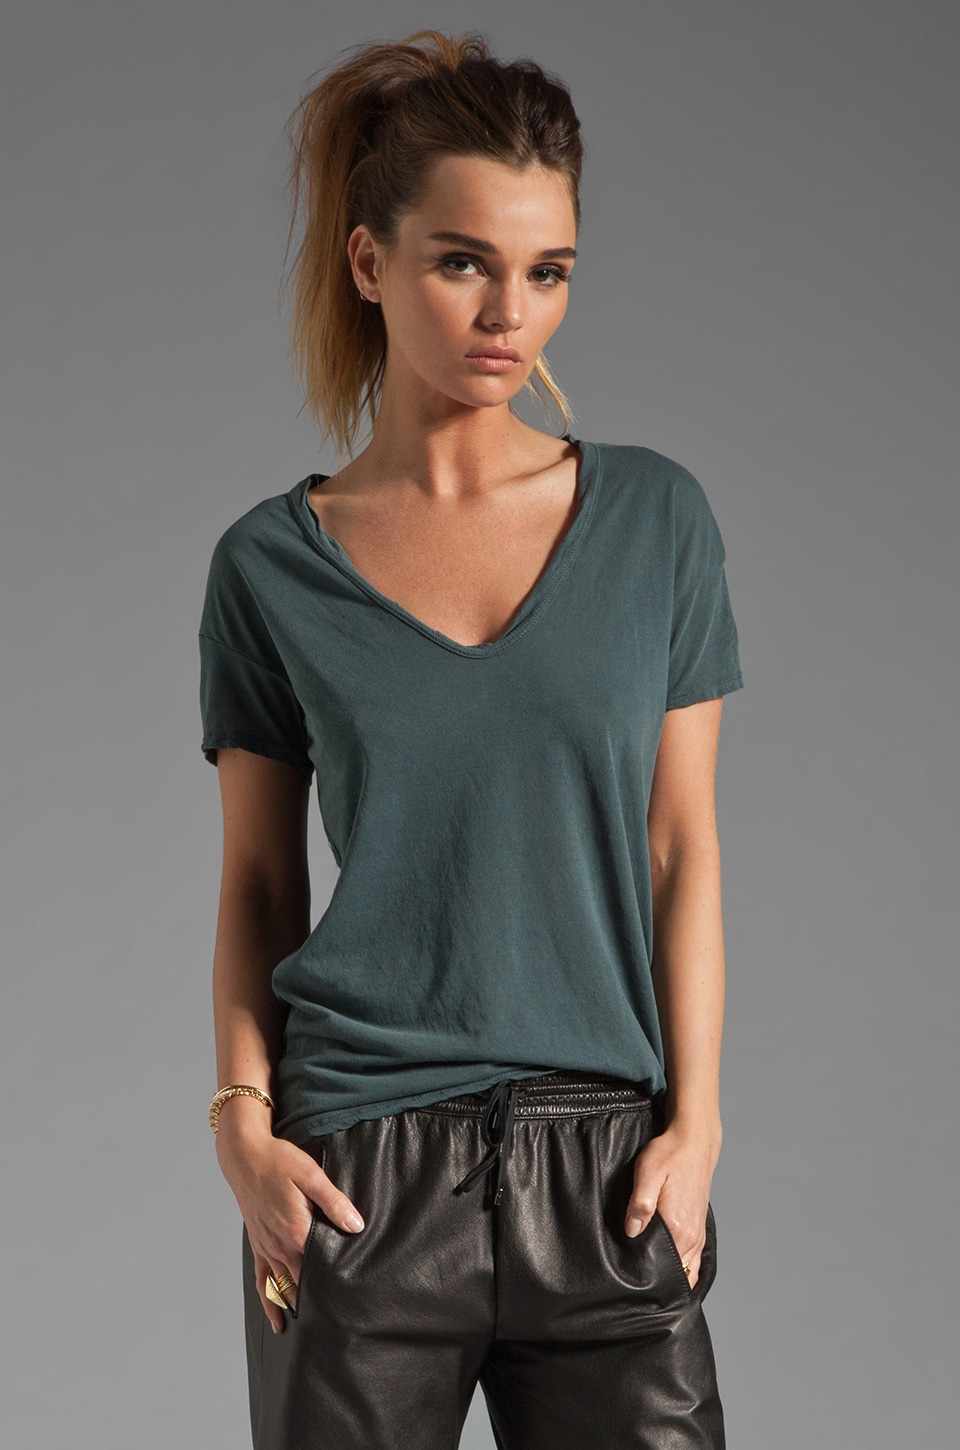 James Perse Relaxed Fit Soft V Short Sleeve Tee in Field